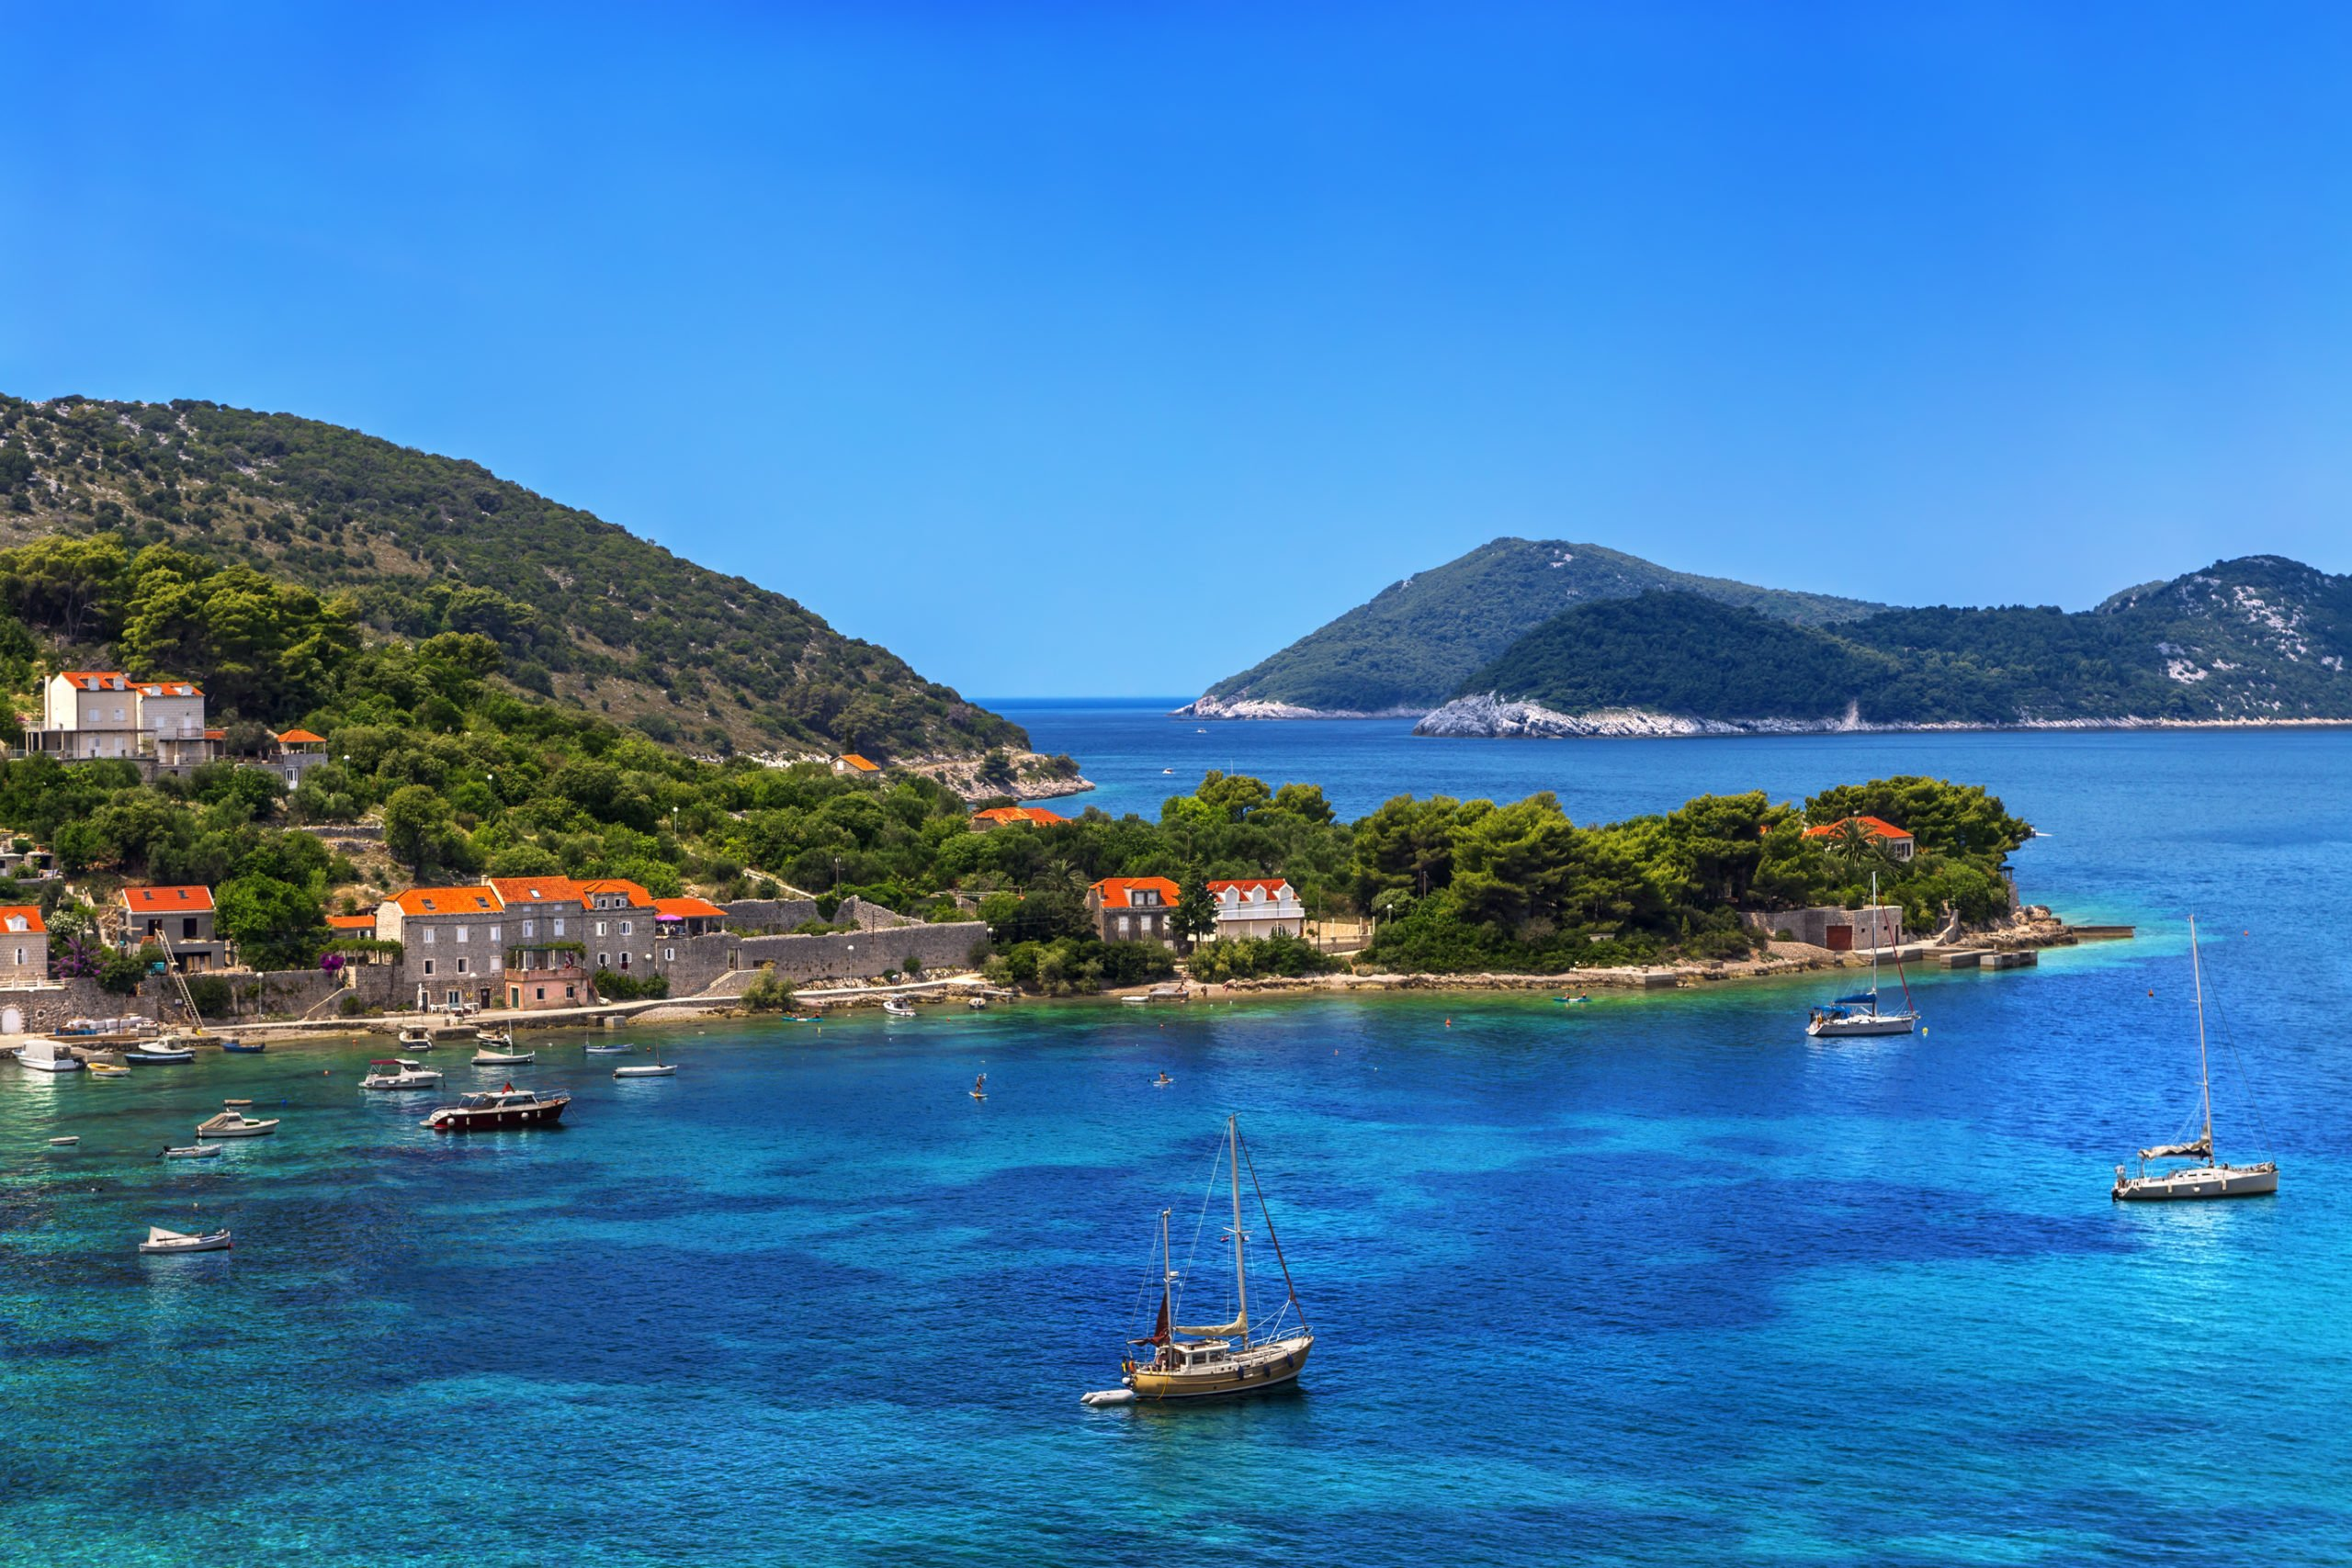 Explore The Smallest Of The Elaphiti Islands - Kolocep Island - On Your 2 Day Dubrovnik Tour Package